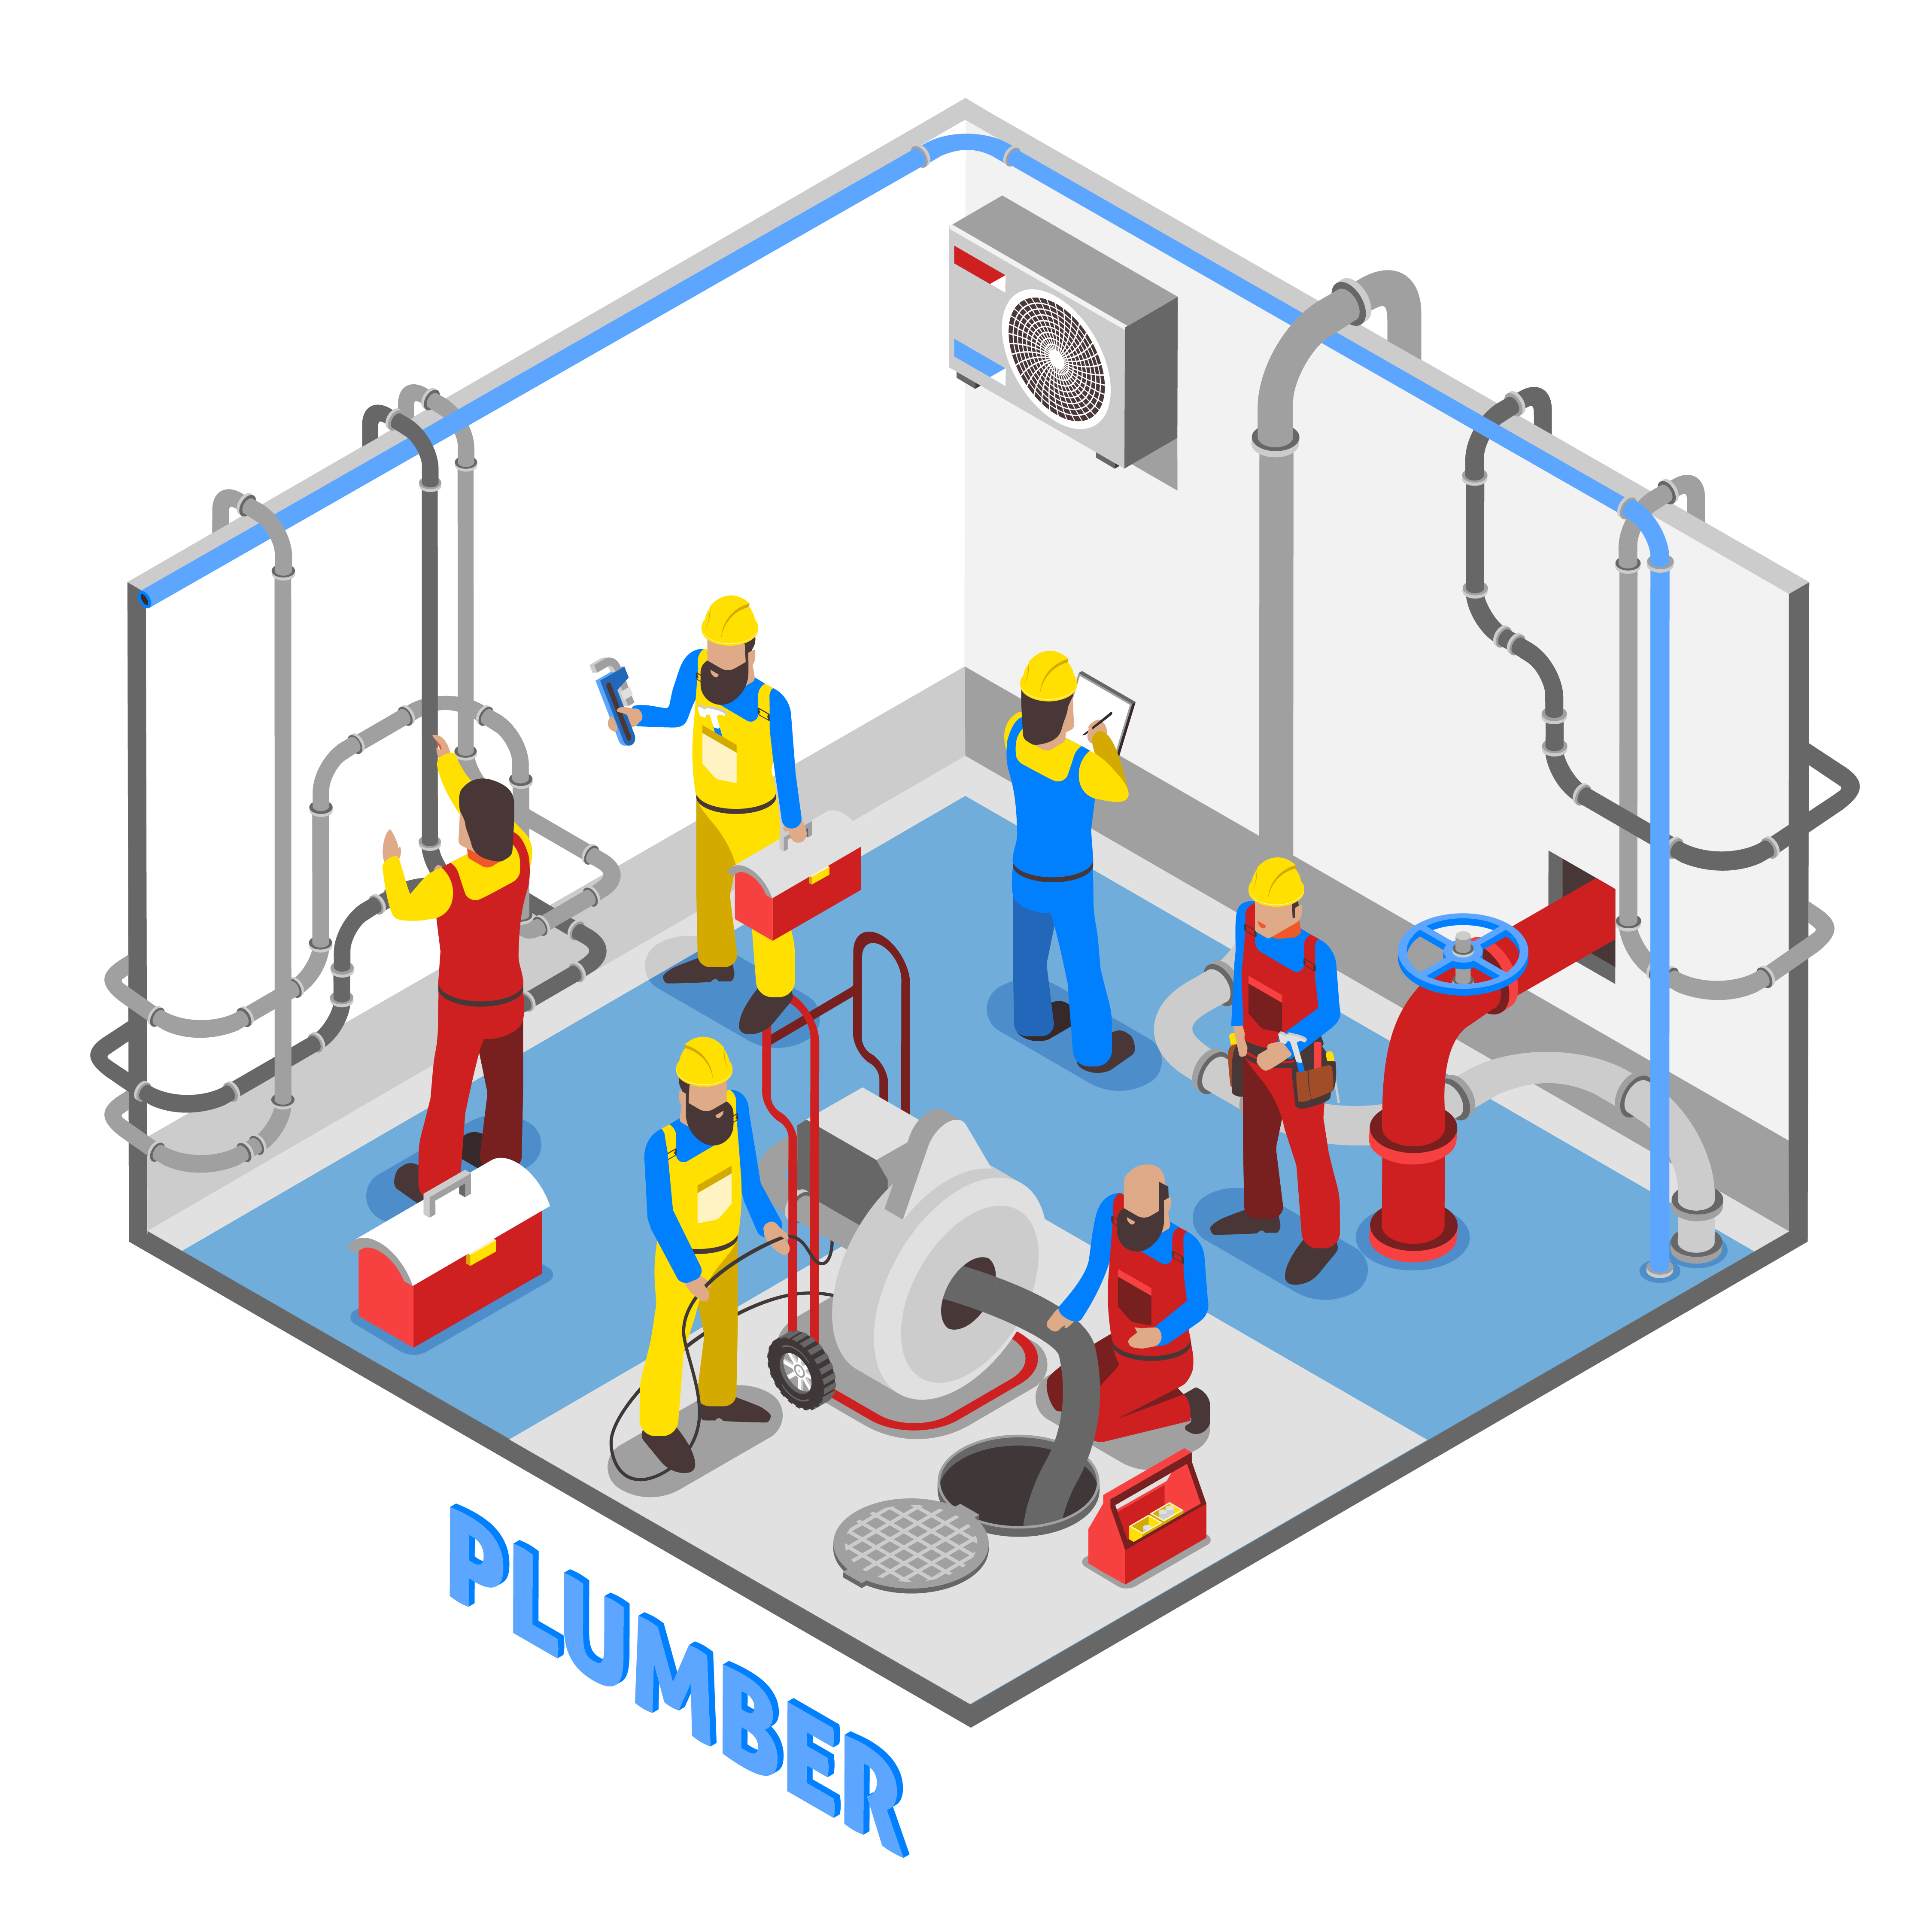 Plumber Isometric People Composition Download Free